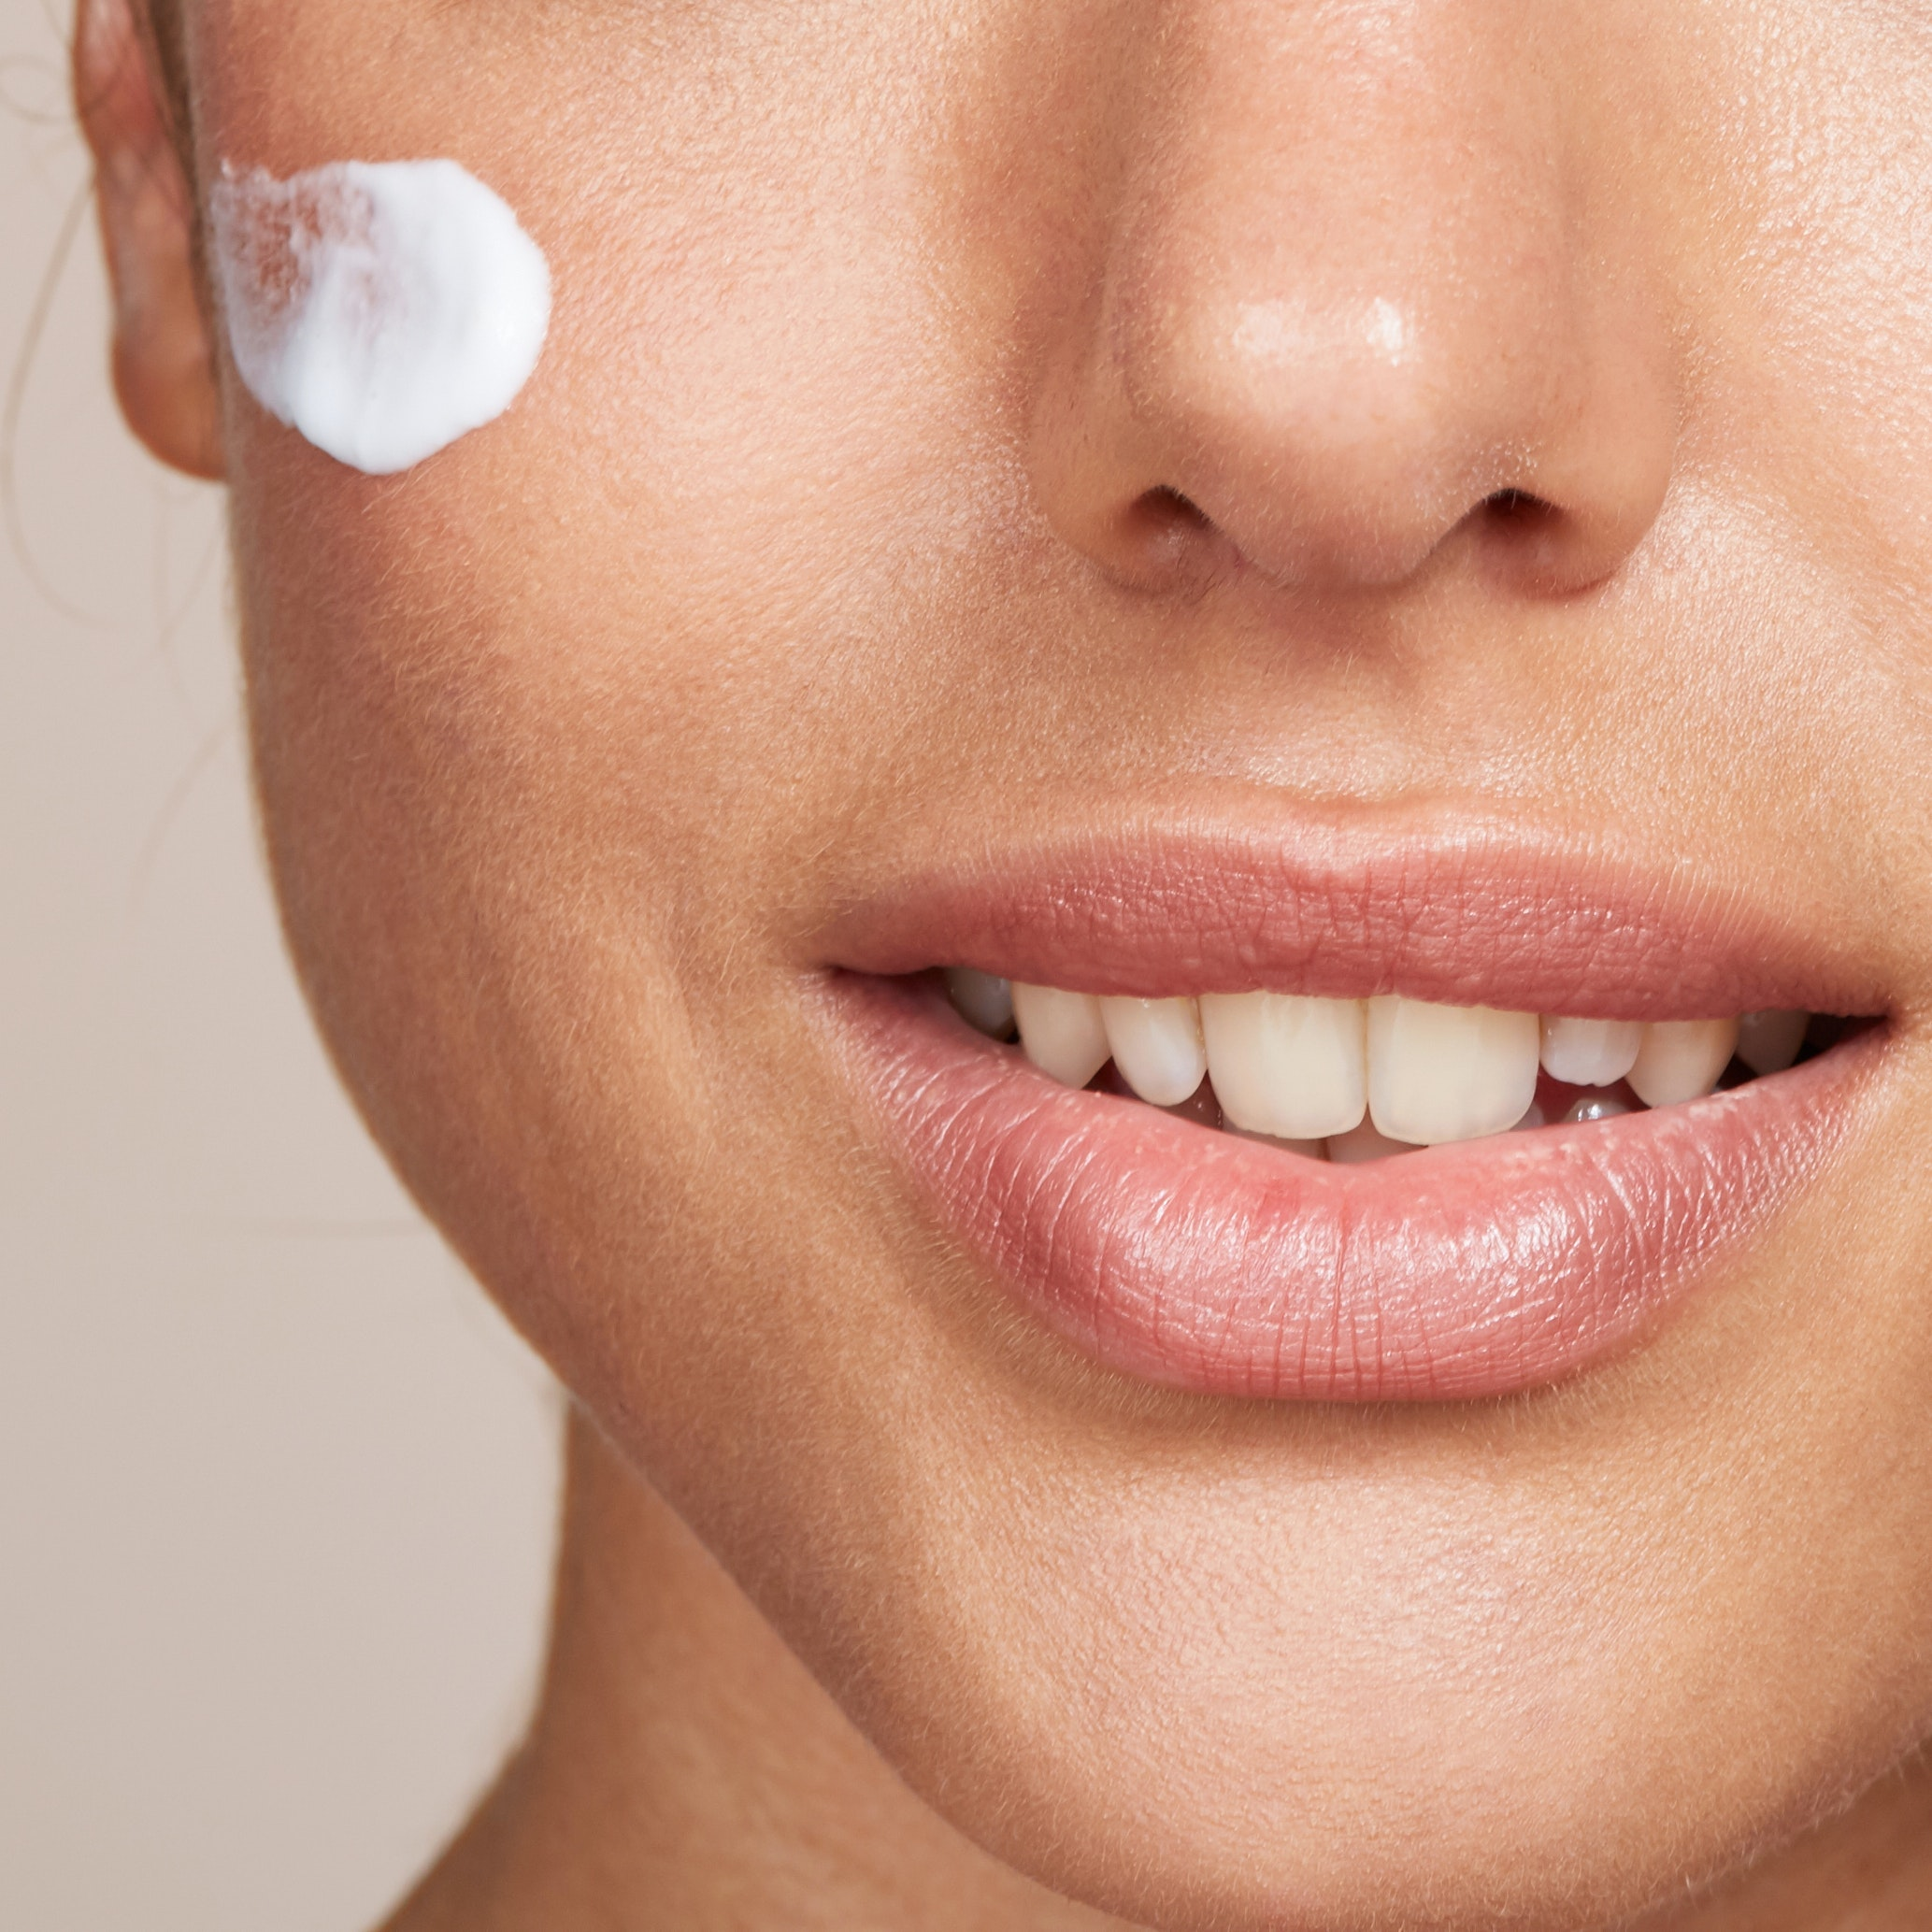 8 of the Best Sunscreens For Your Face Post-Chemical Peel, According to Dermatologists